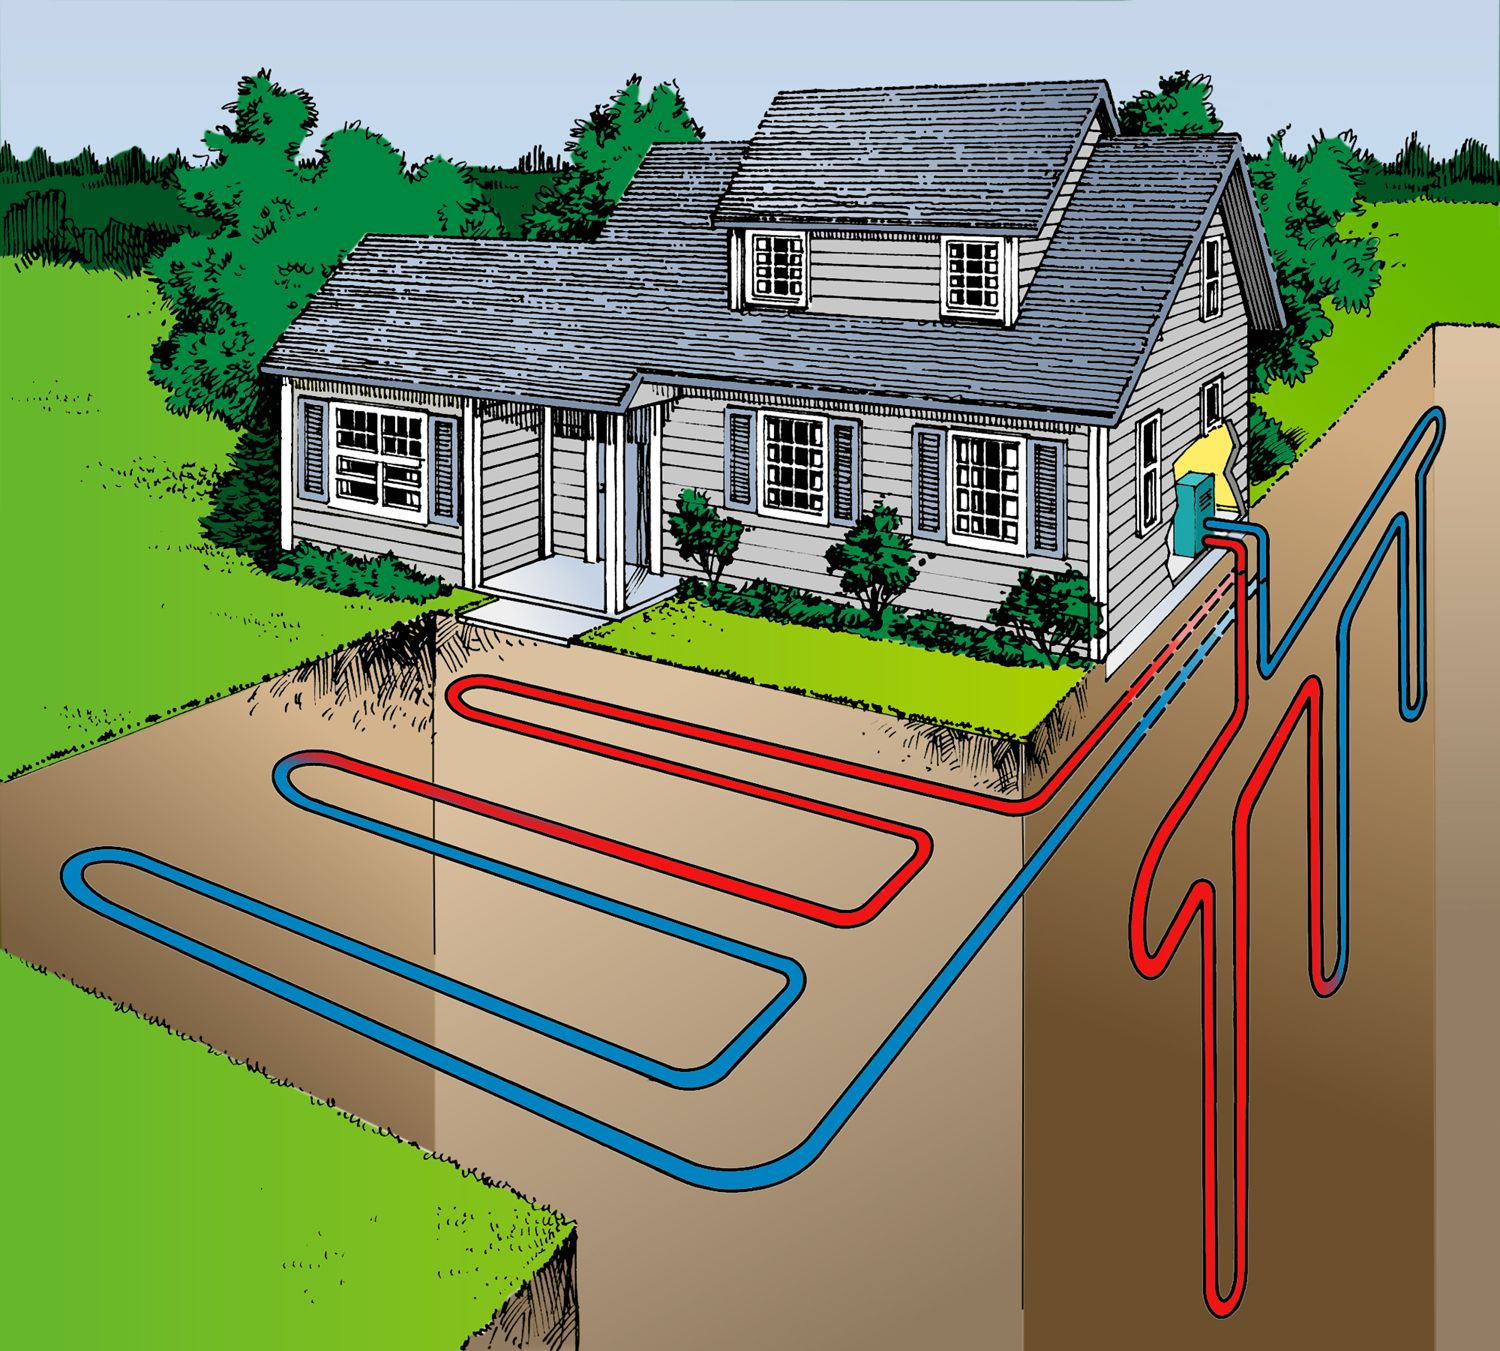 medium resolution of geothermal energy for free heat and air conditioning